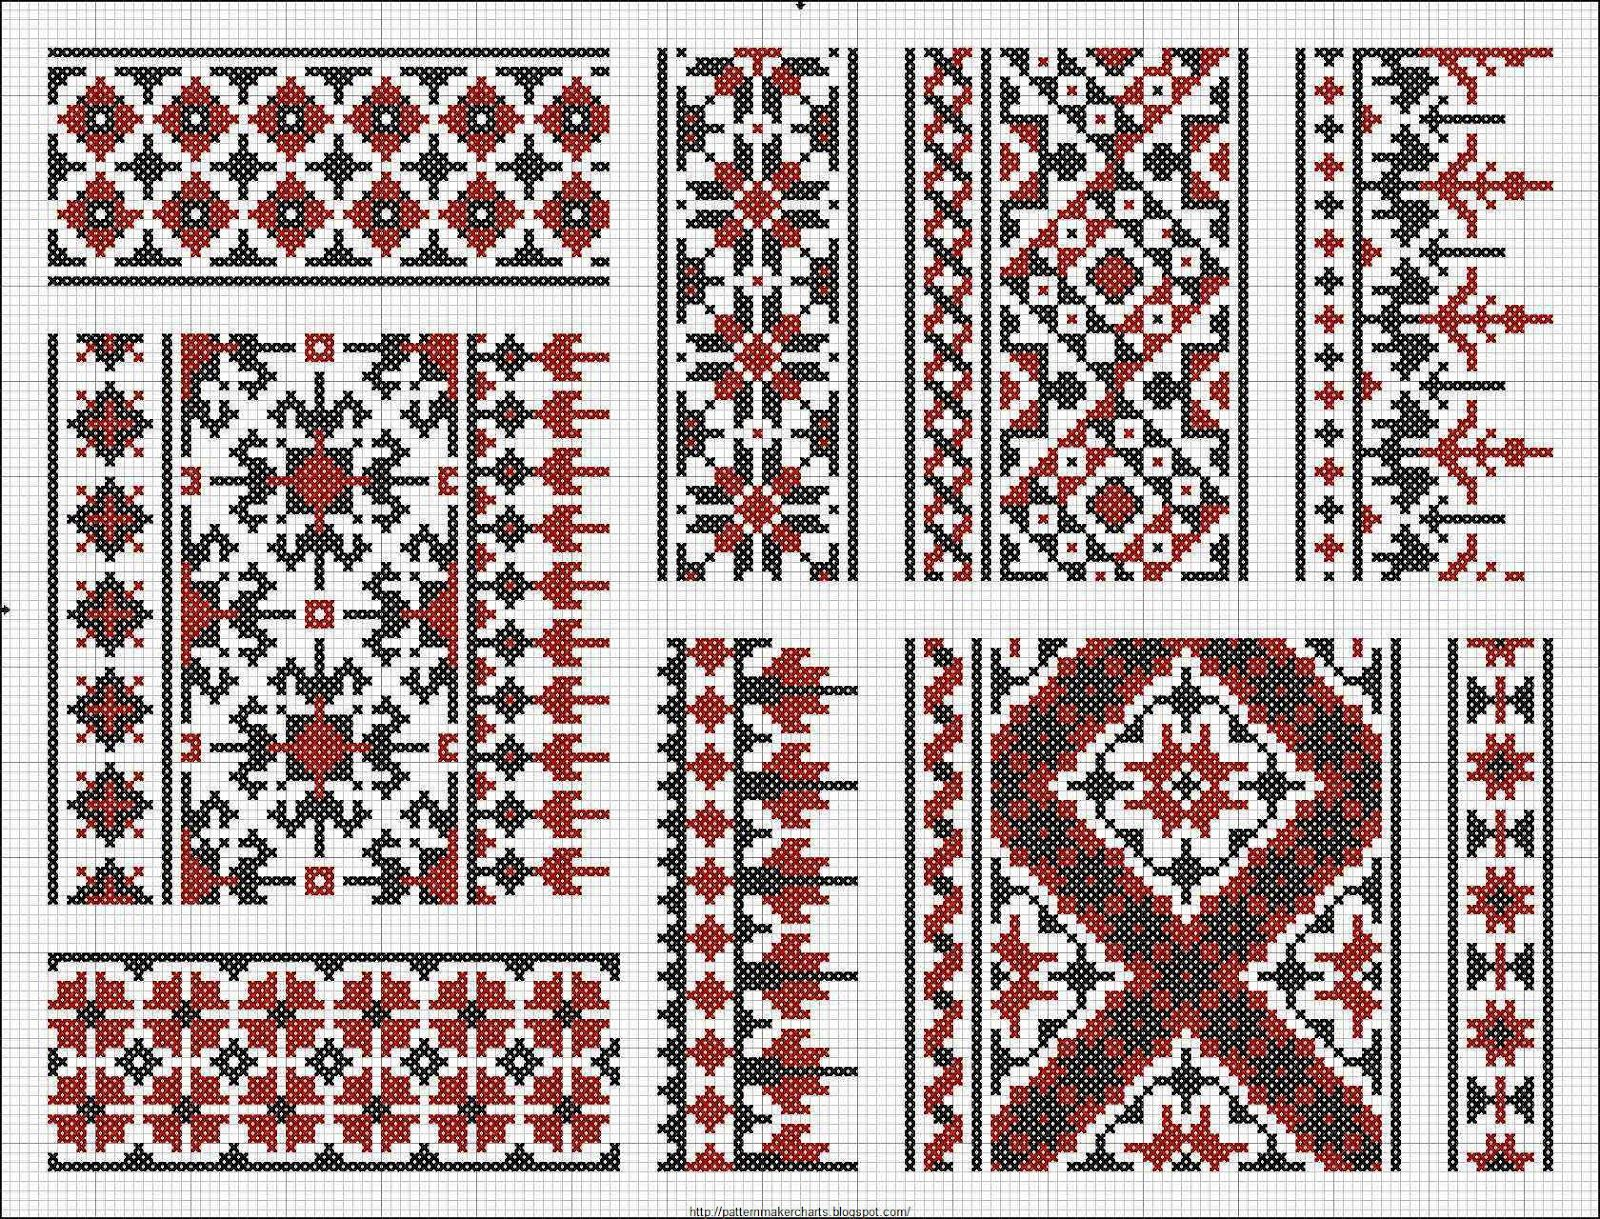 Free easy cross pattern maker pcstitch charts free historic free easy cross pattern maker pcstitch charts free historic old pattern books bankloansurffo Image collections